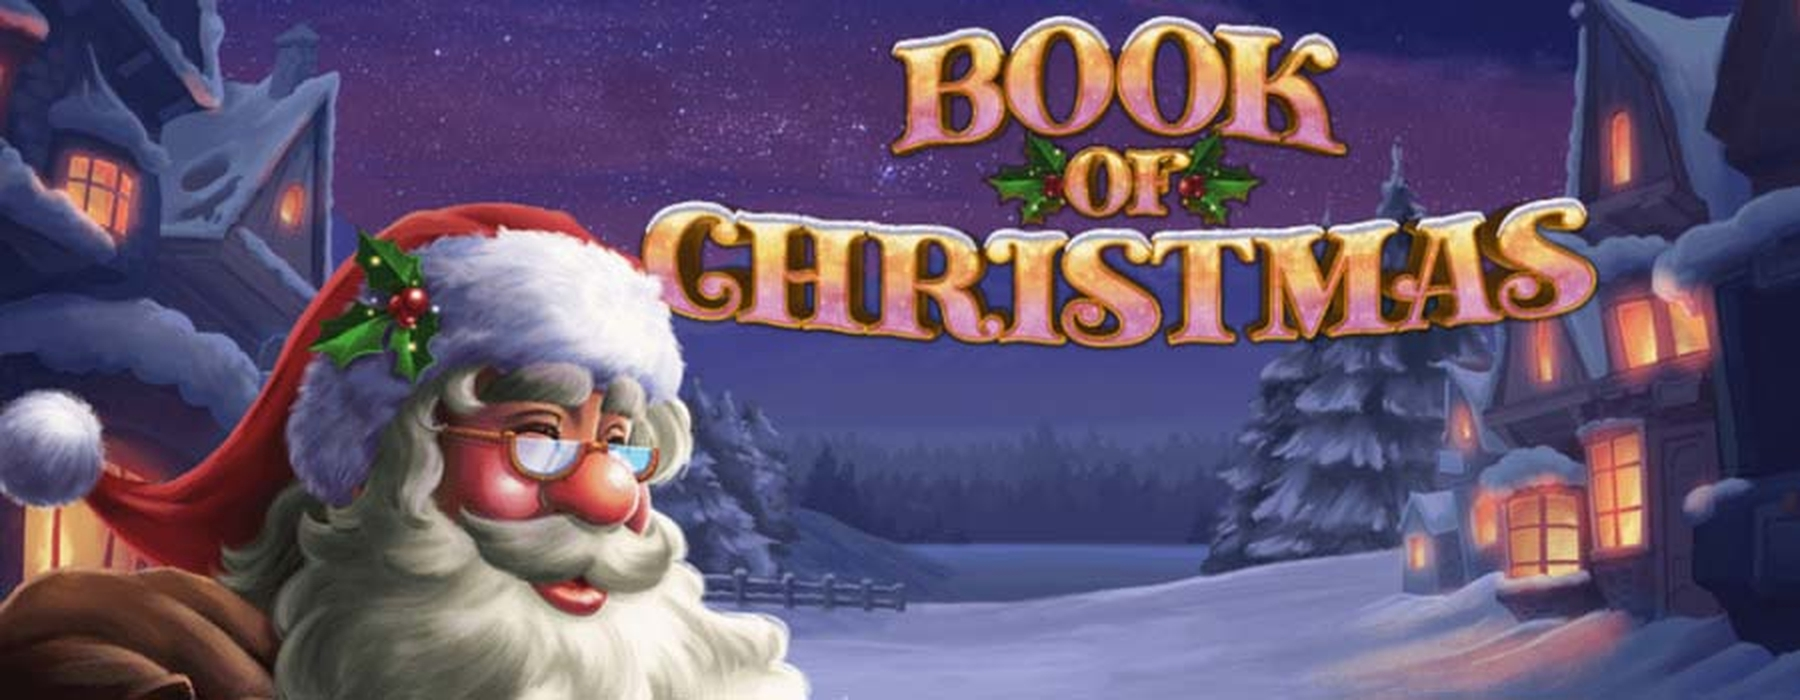 The Book of Christmas Online Slot Demo Game by Inspired Gaming